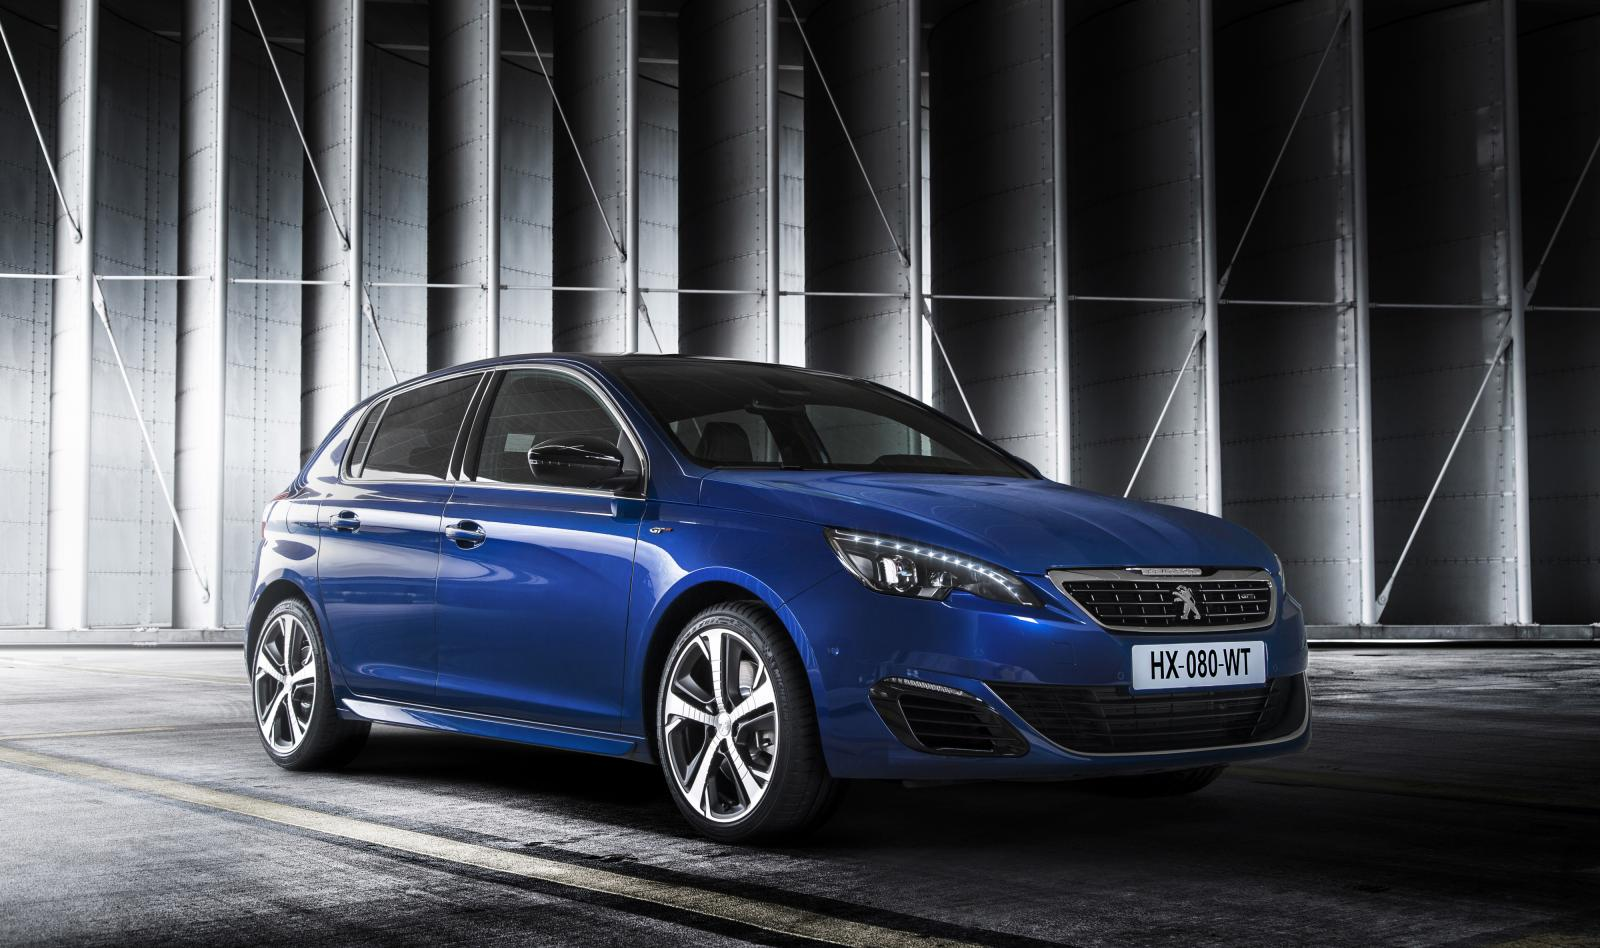 peugeot 308 gt unveiled ahead of paris debut. Black Bedroom Furniture Sets. Home Design Ideas